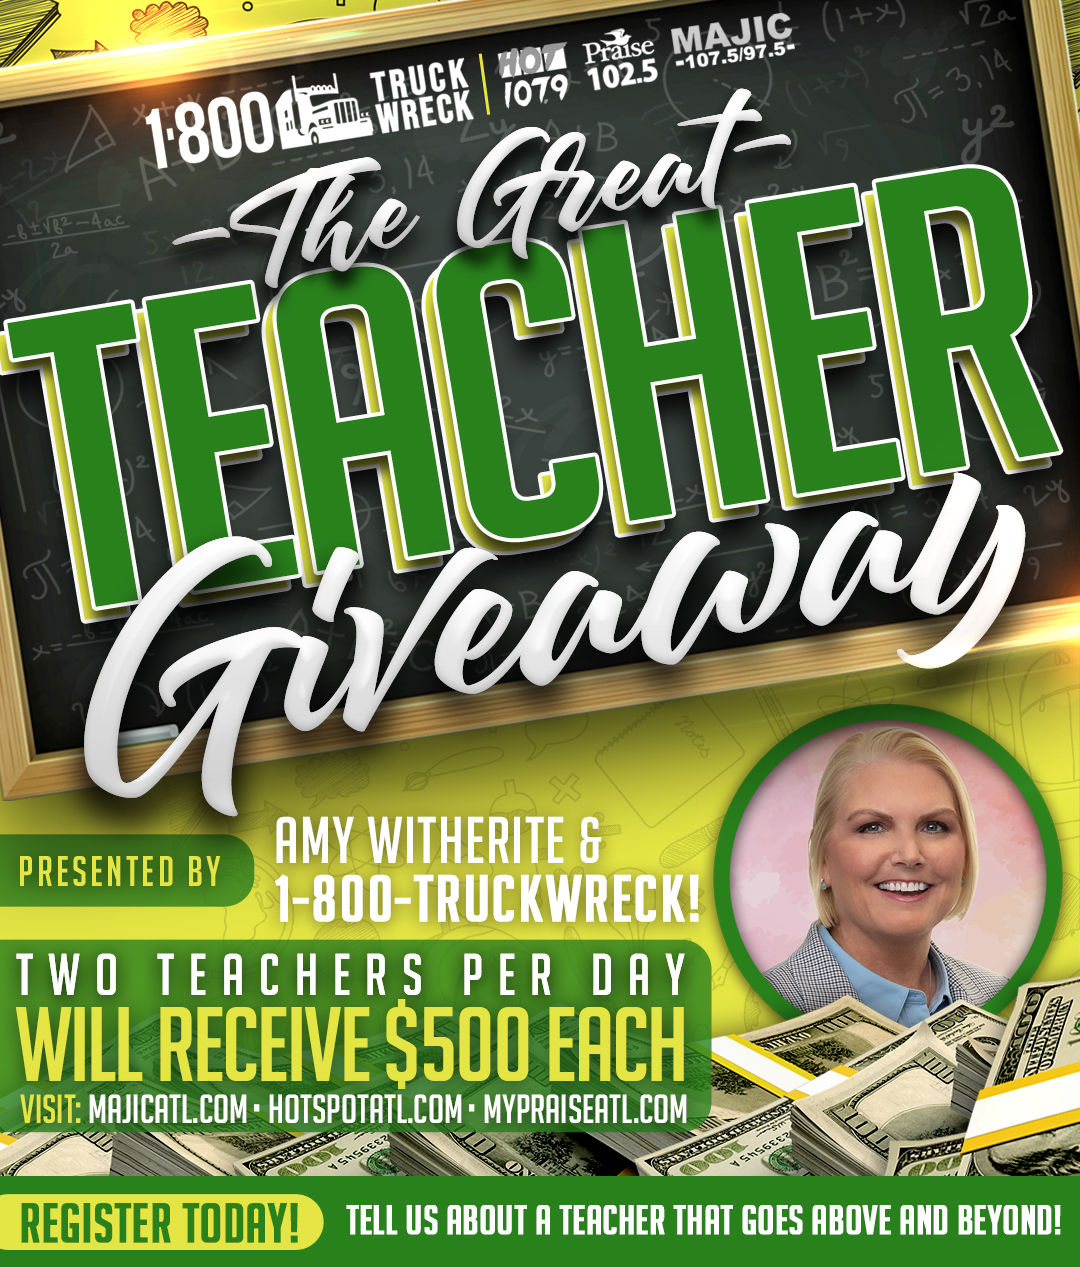 1-800-TruckWreck Presents | The Great Teacher Giveaway Contest!